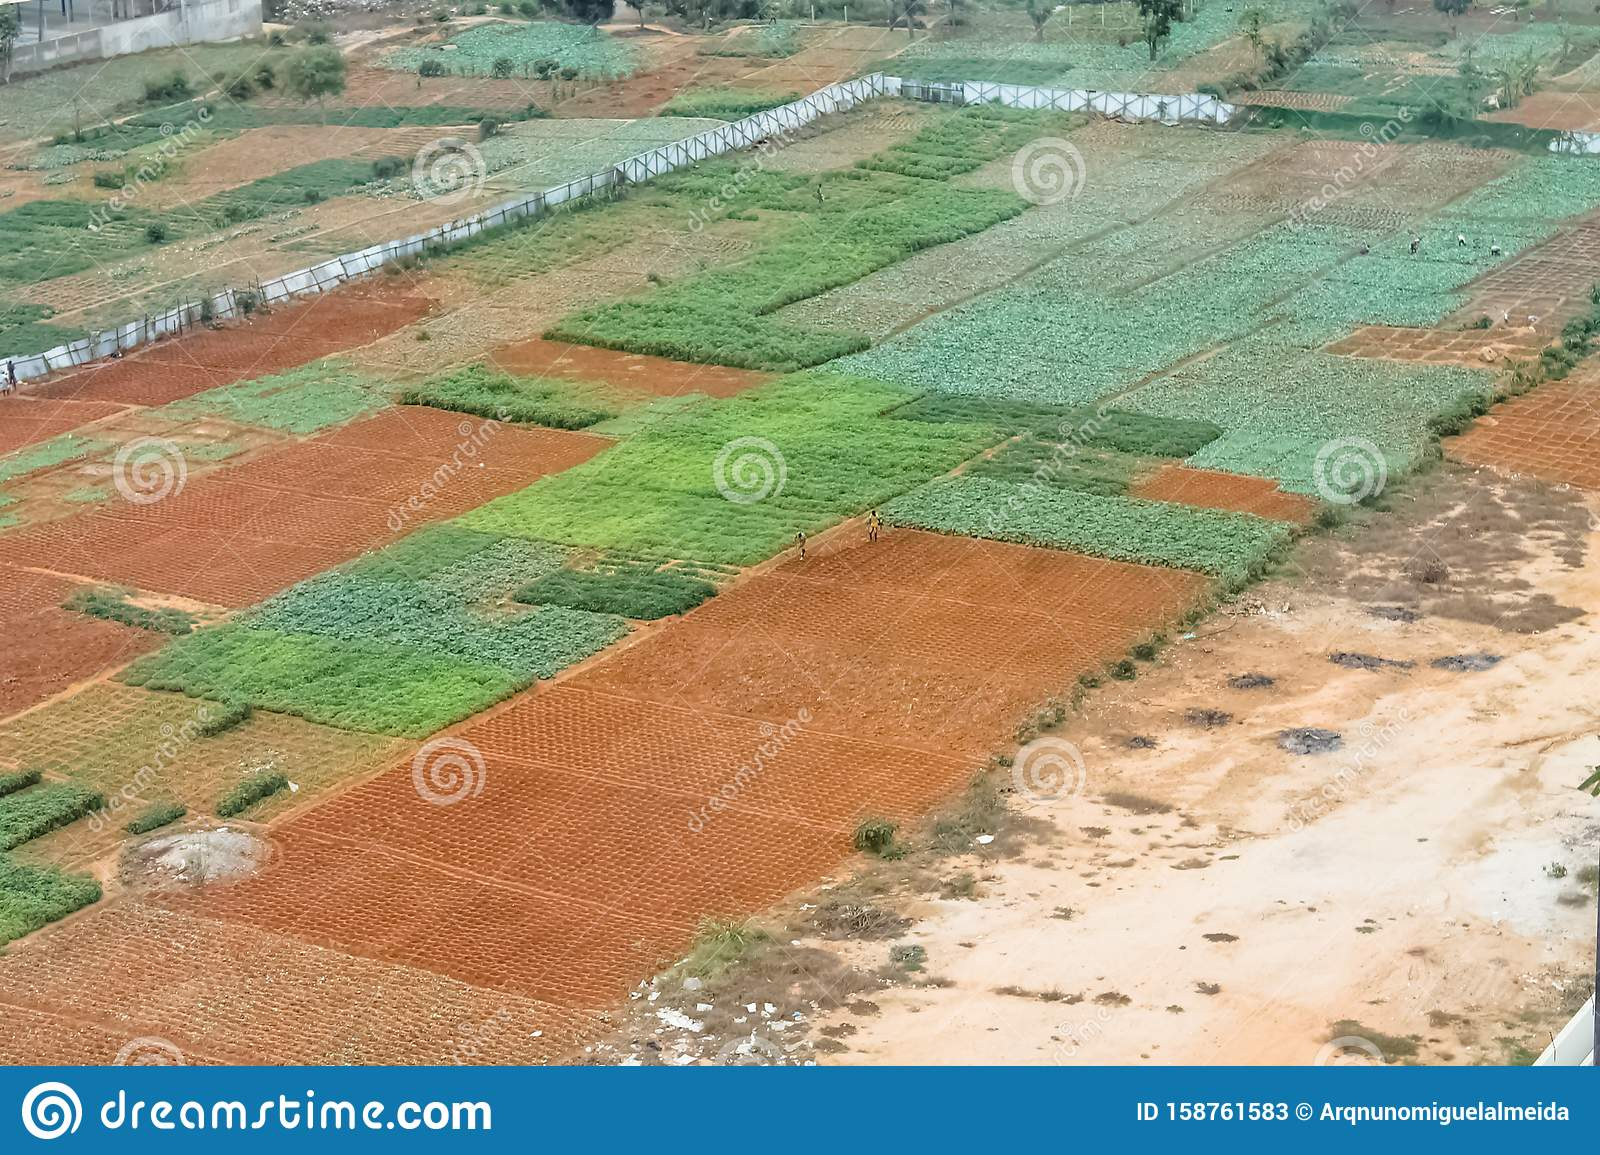 Aerial view of farmland for traditional agriculture with traditional farmers cultivating the land